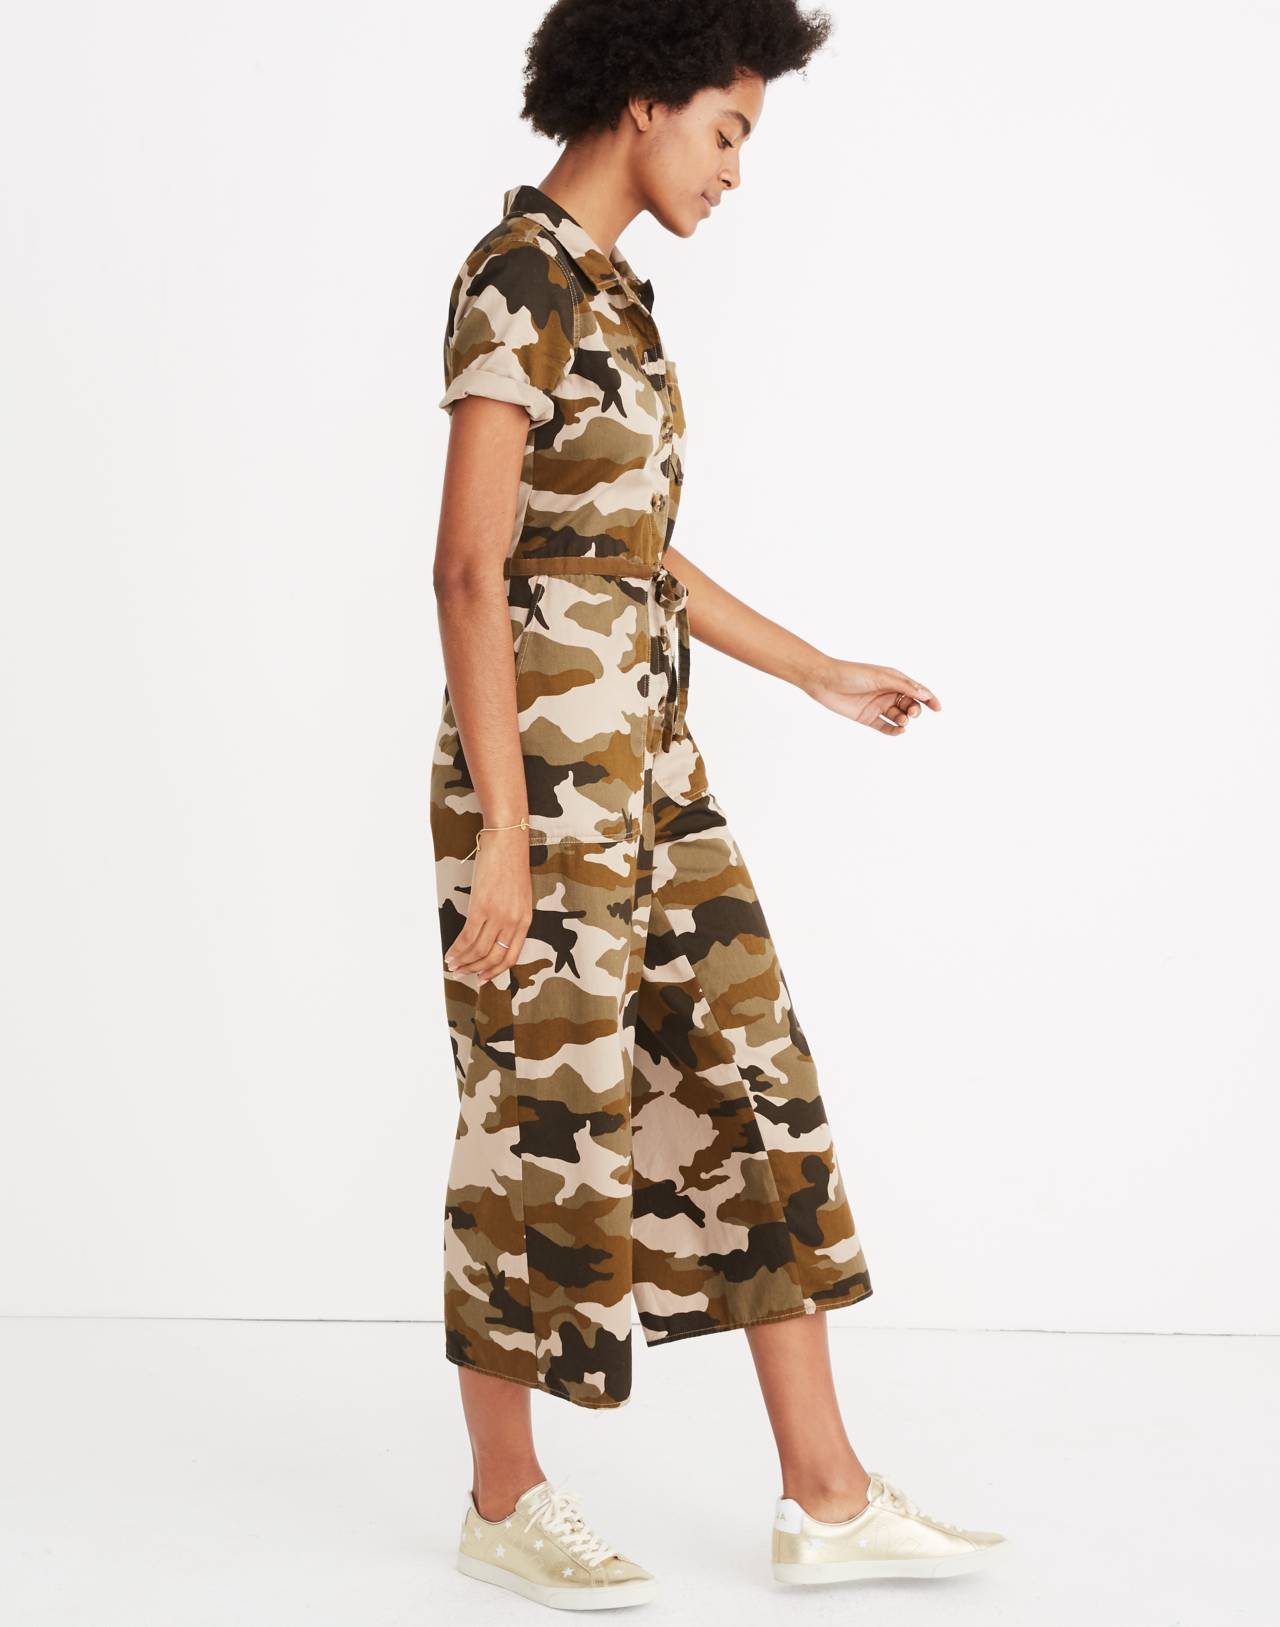 Wide-Leg Utility Jumpsuit in Cottontail Camo in bunny camo asparagus image 2